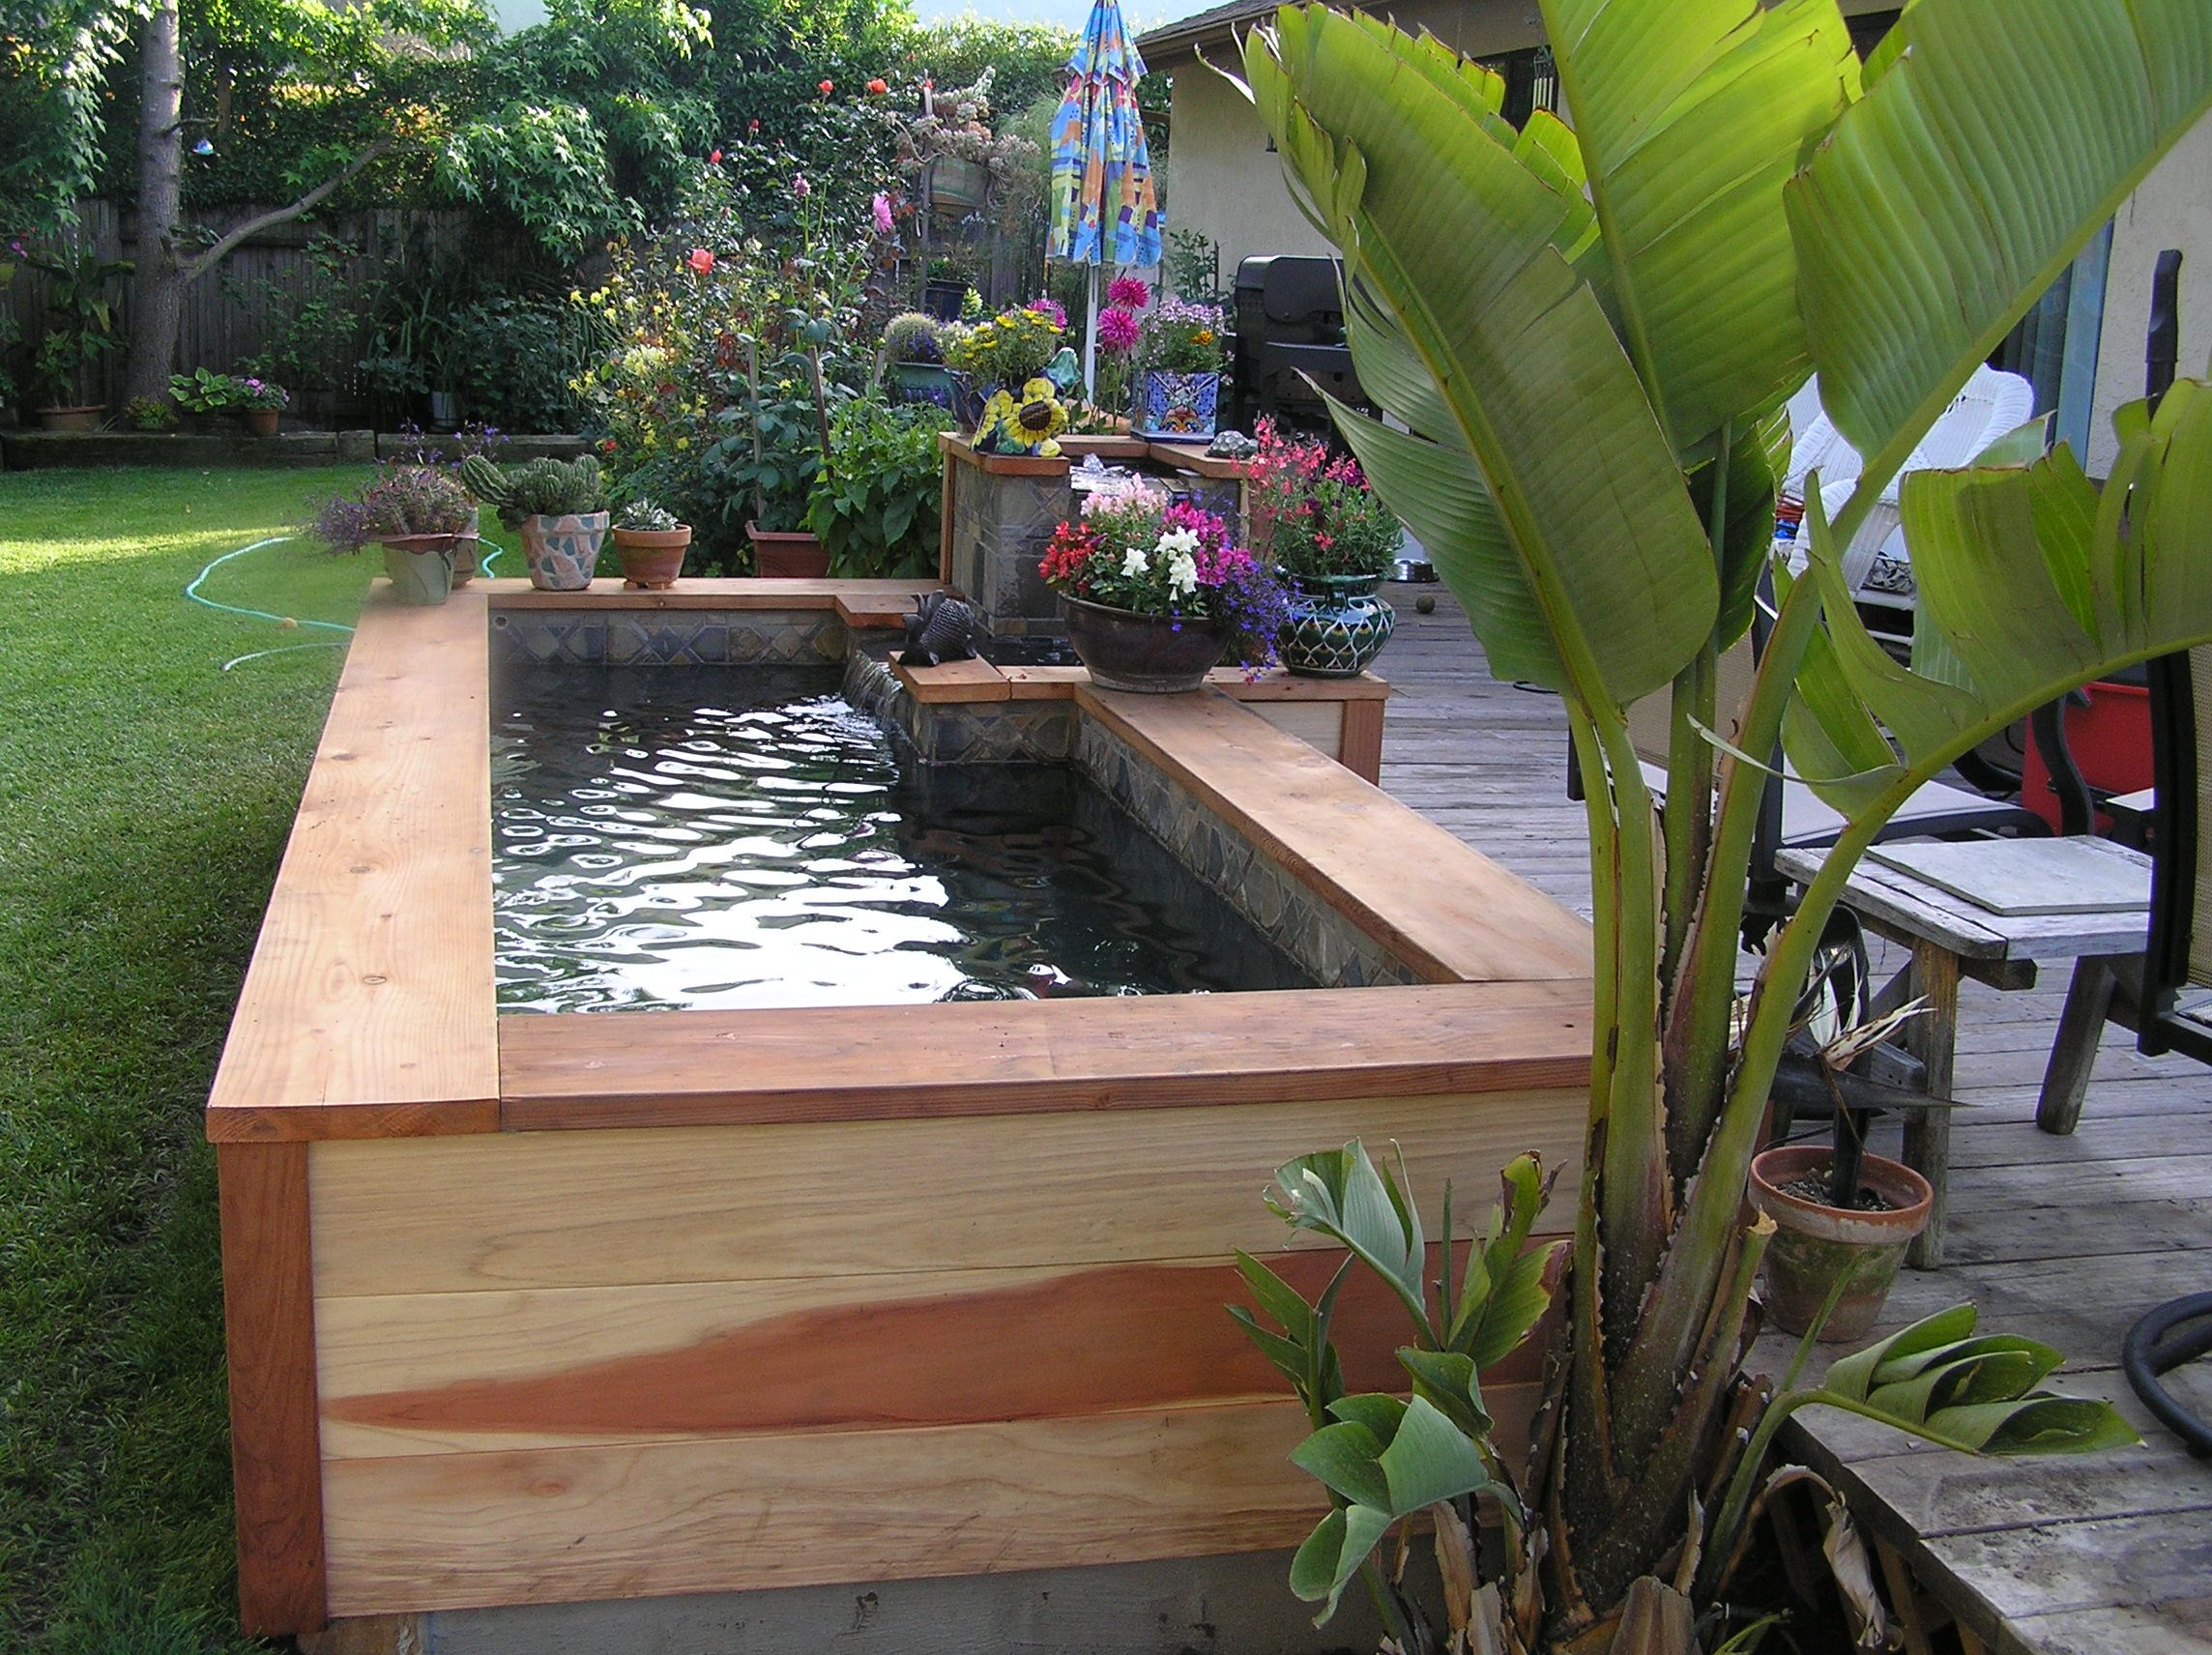 1000 ideas about pond design on pinterest garden ponds ponds and - Koi Pond Designs Ideas